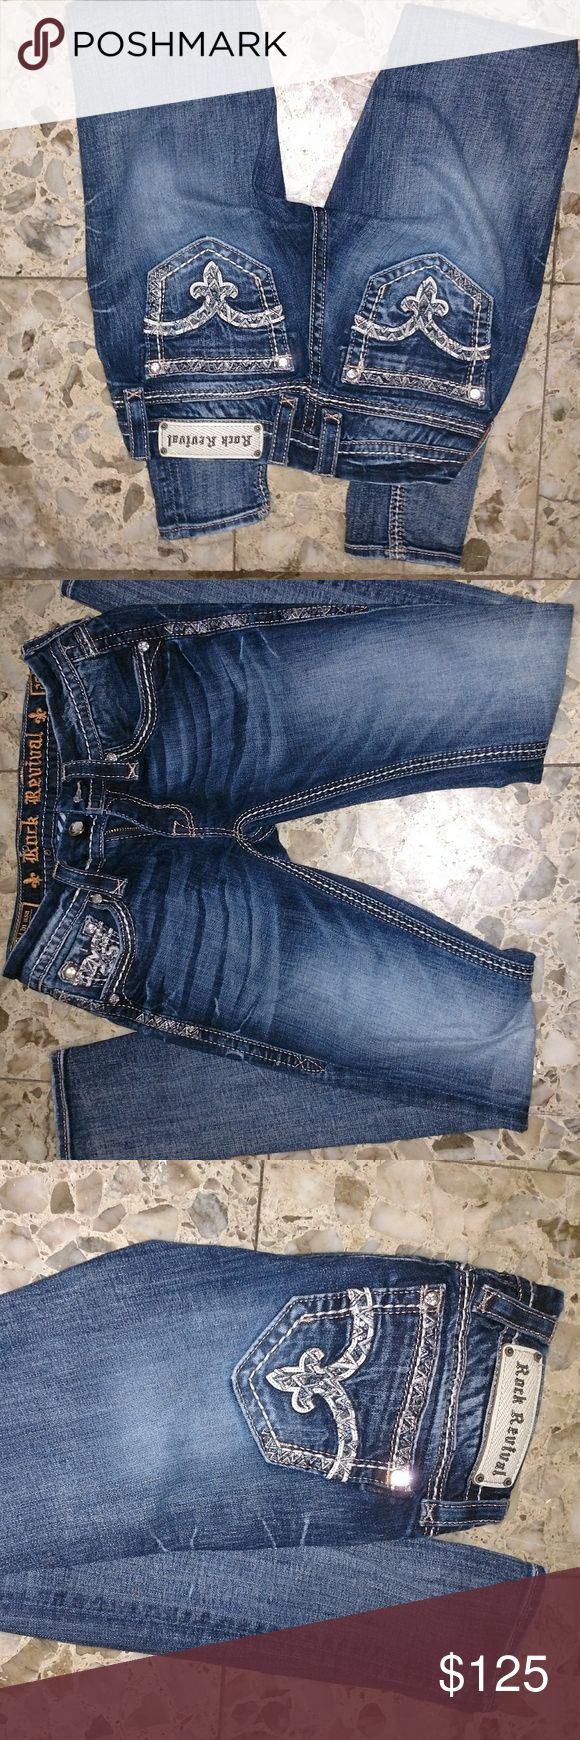 Rock Revival 25 July cuffed skinny jeans new New size 25 skinny jeans run on the smaller side Rock Revival Jeans Skinny